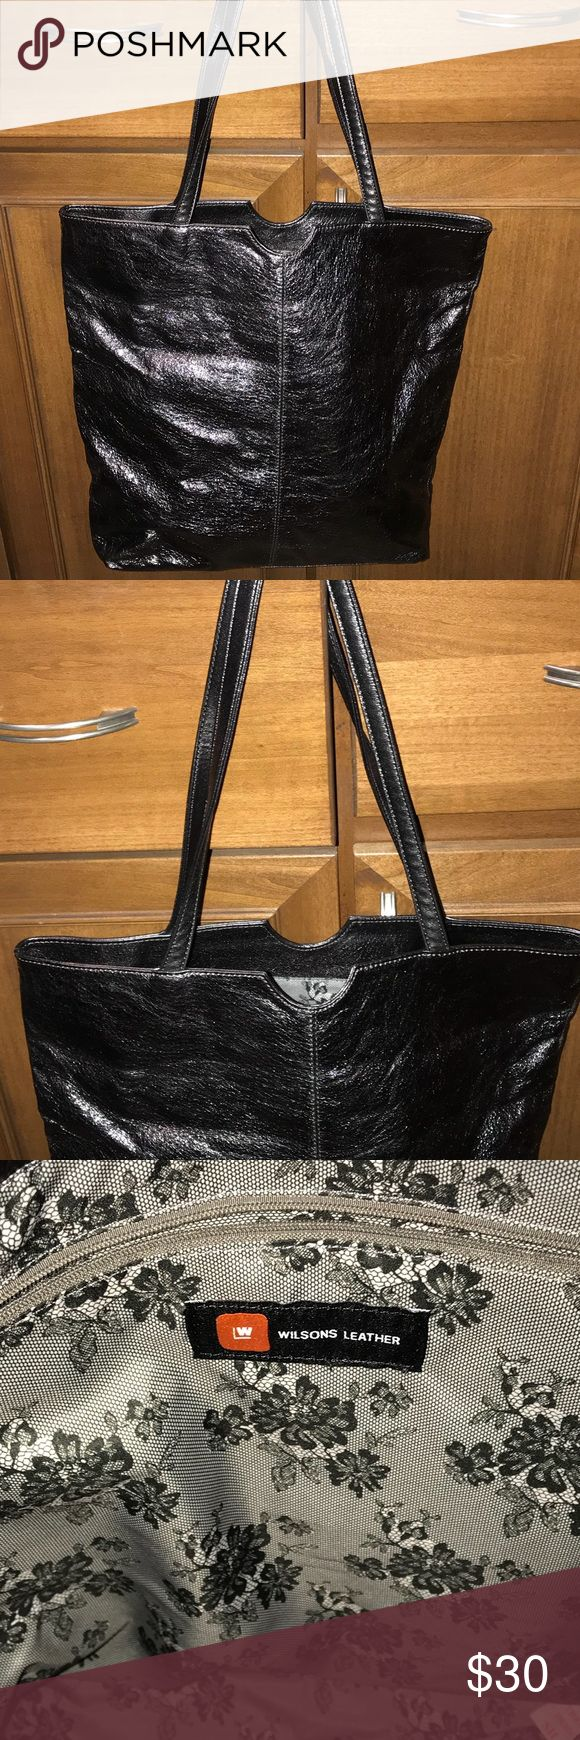 Wilson's Leather Silver Tote Bag Wilson's Leather Tote height is 15' high by 16'wide. 2 handles drop length is 11'.  Ew never used. Smoke free home. Wilsons Leather Bags Totes